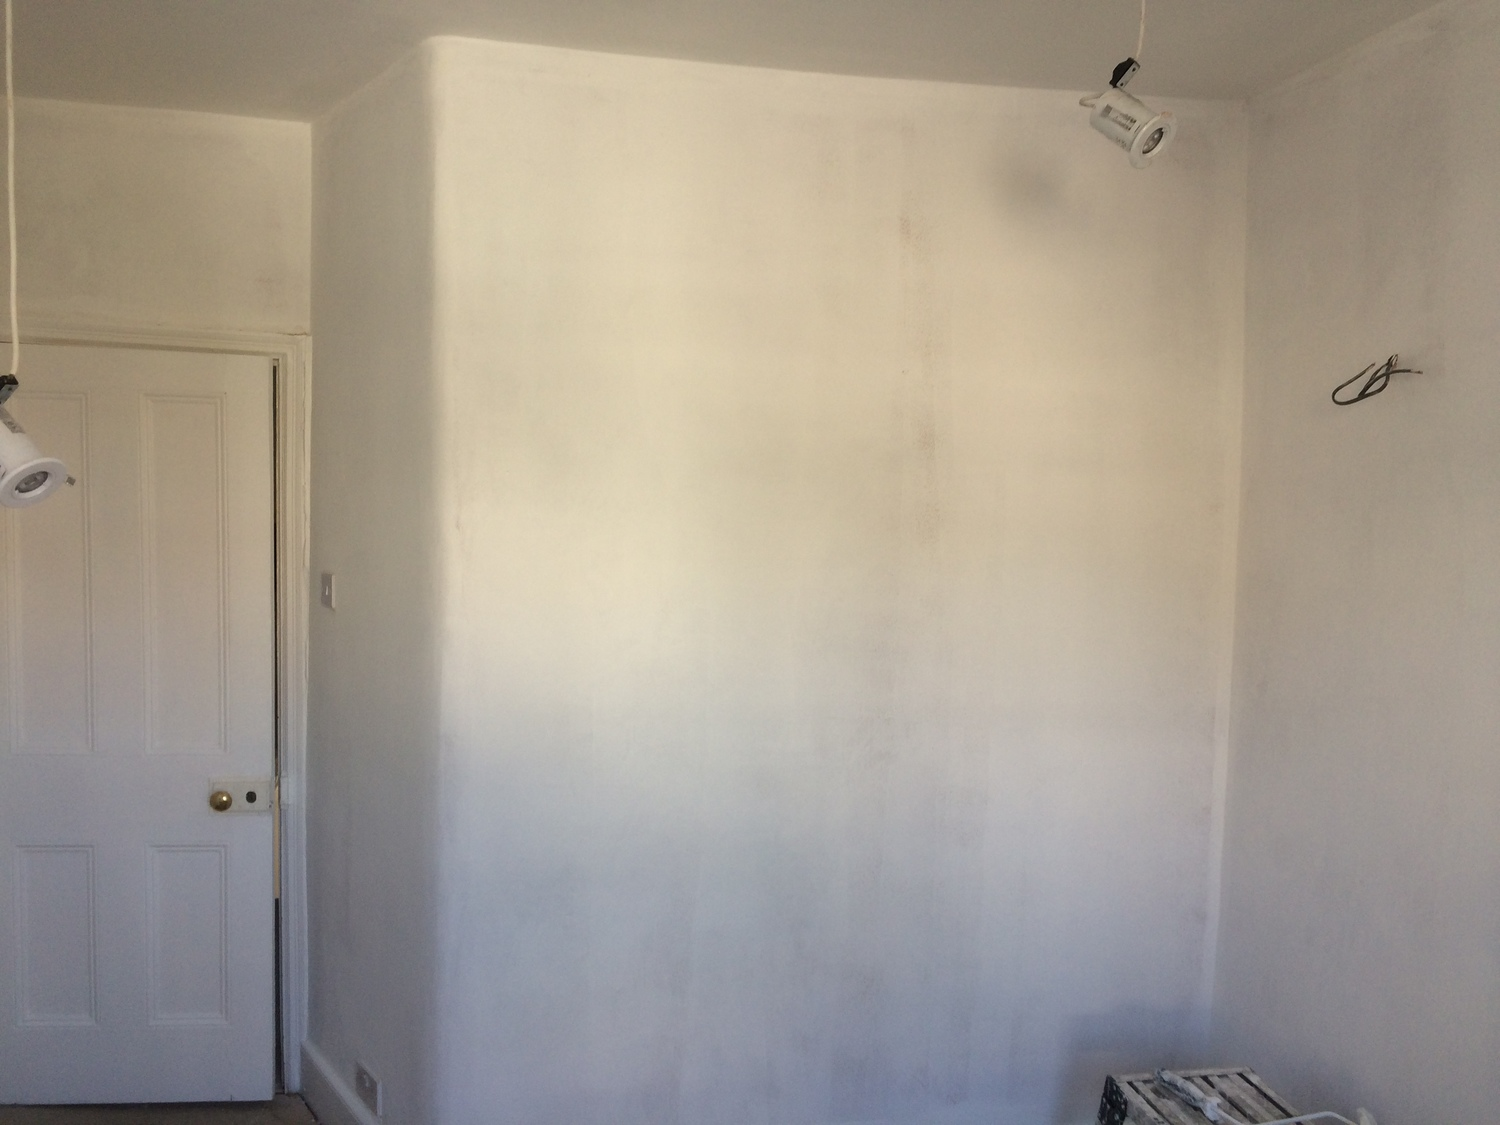 After the mist-coat